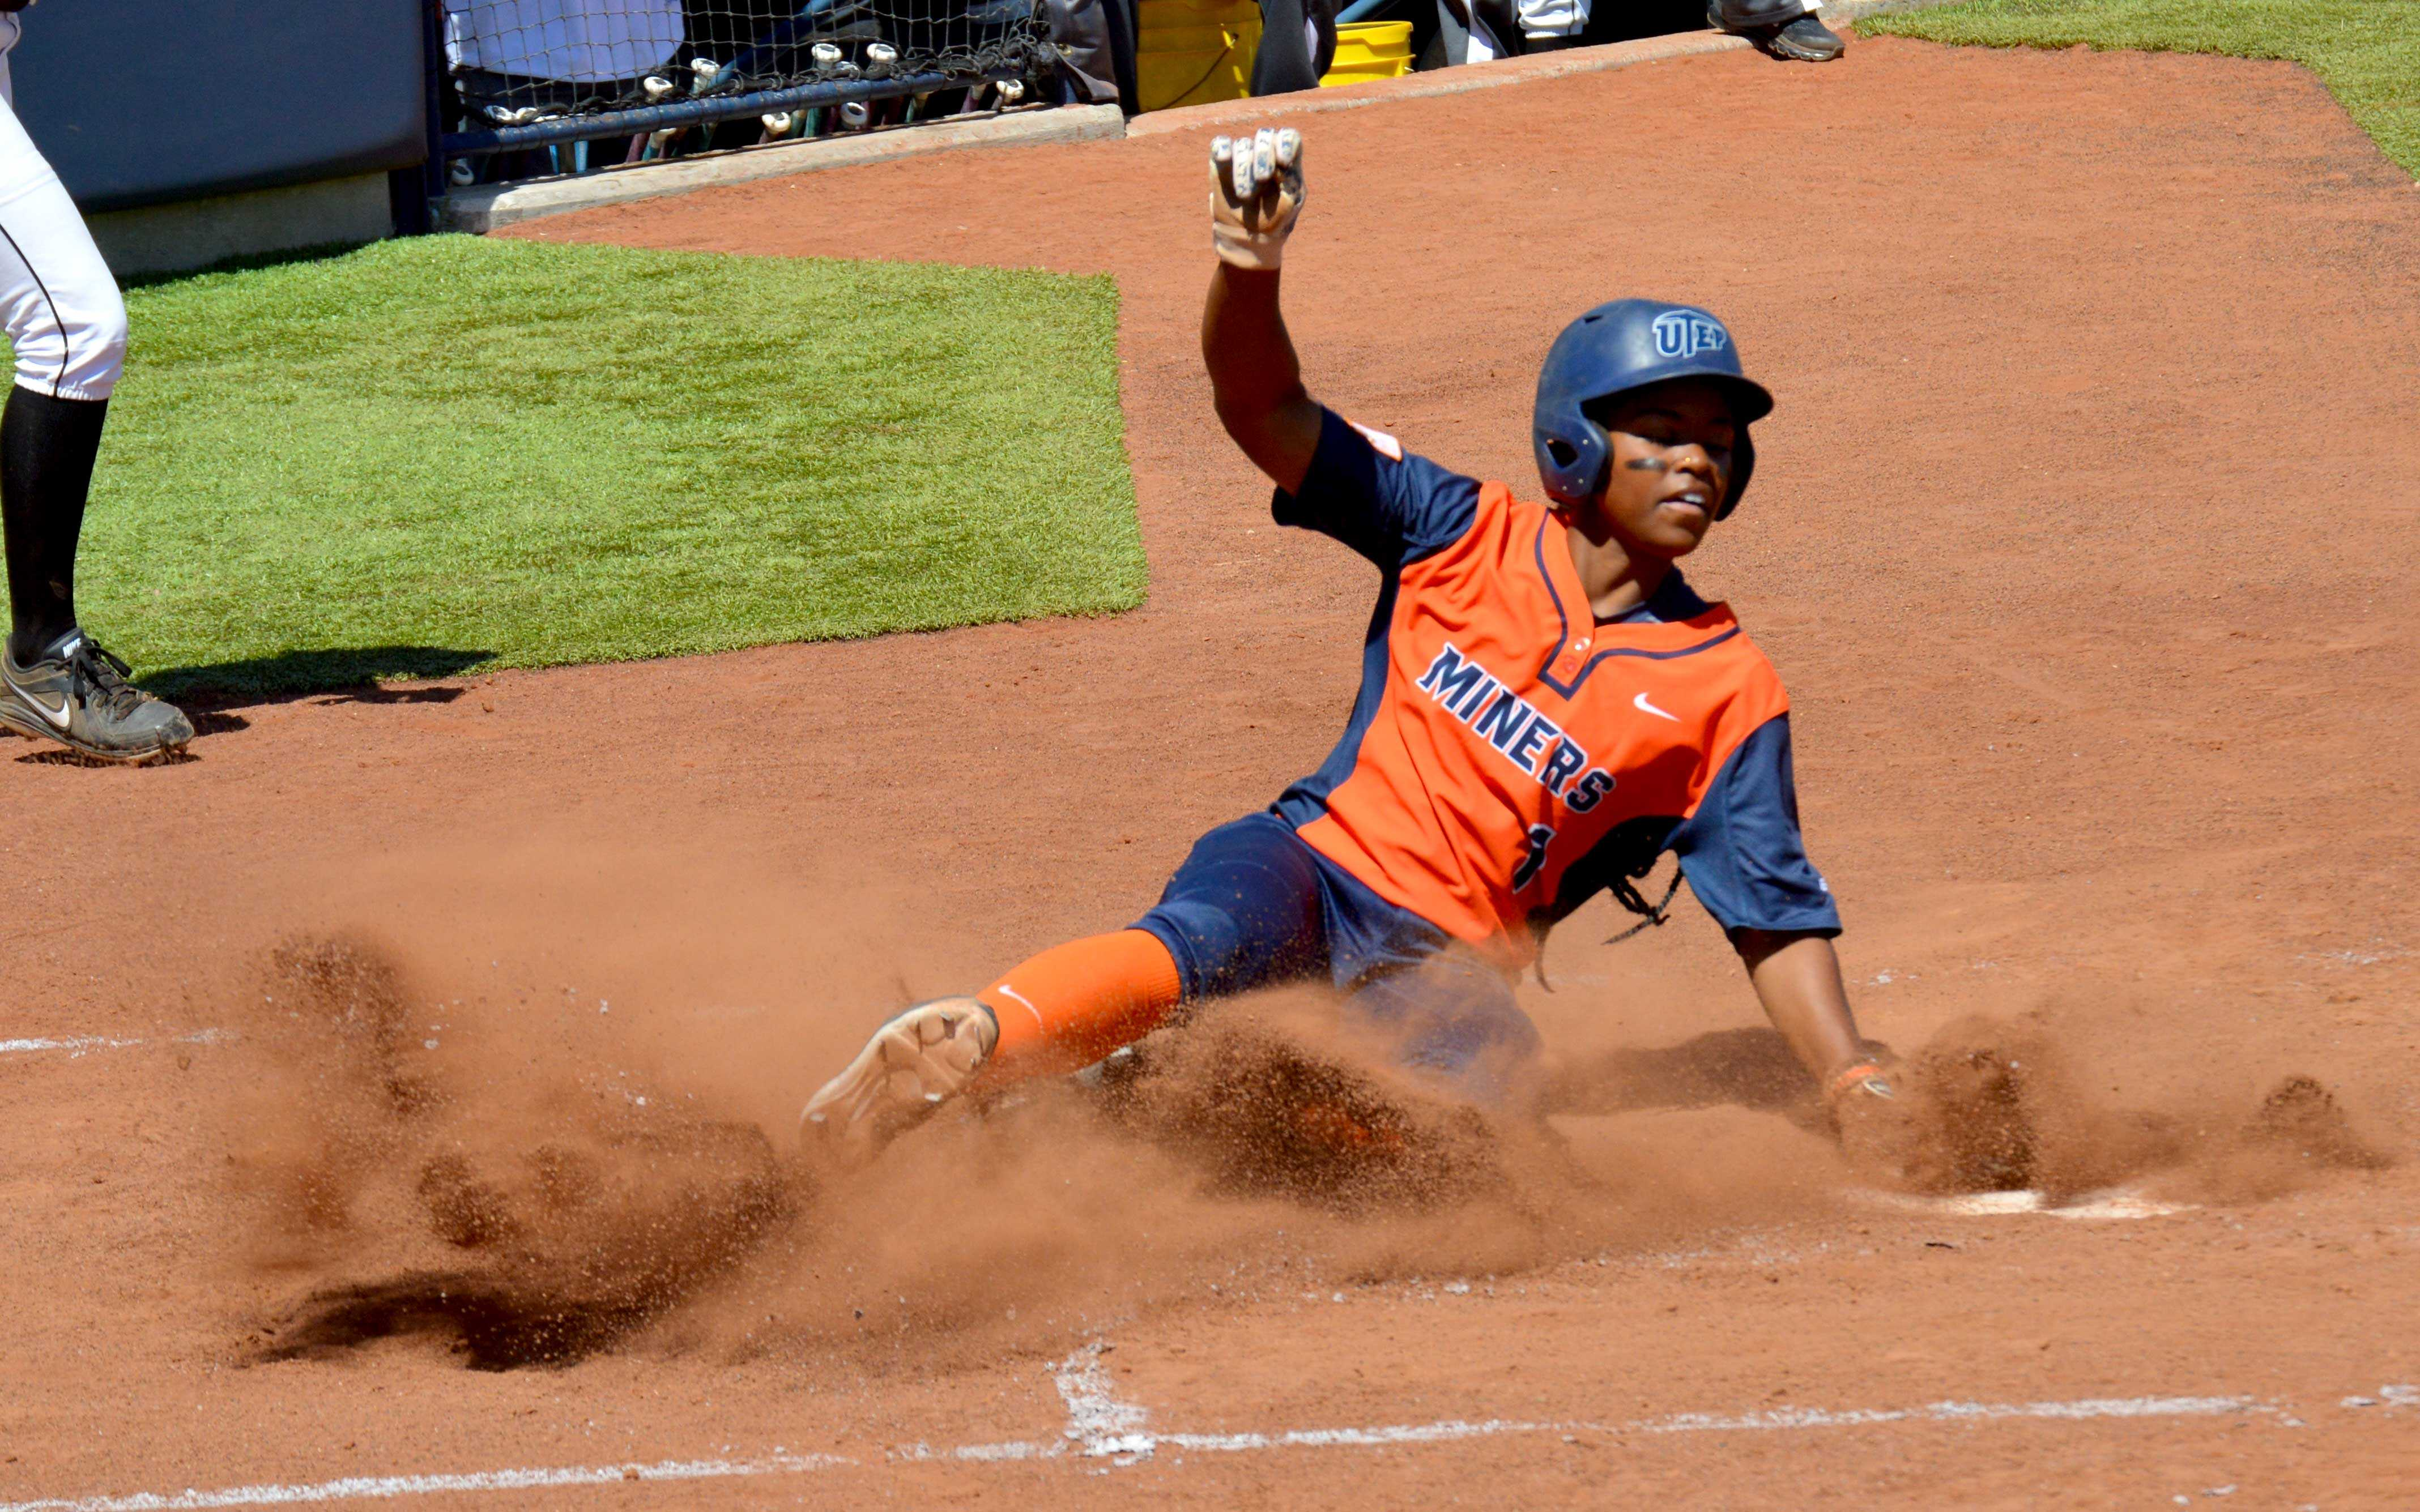 Senior outfielder Tahla Wade slides into home during a game at the Helen of Troy Softball Complex.